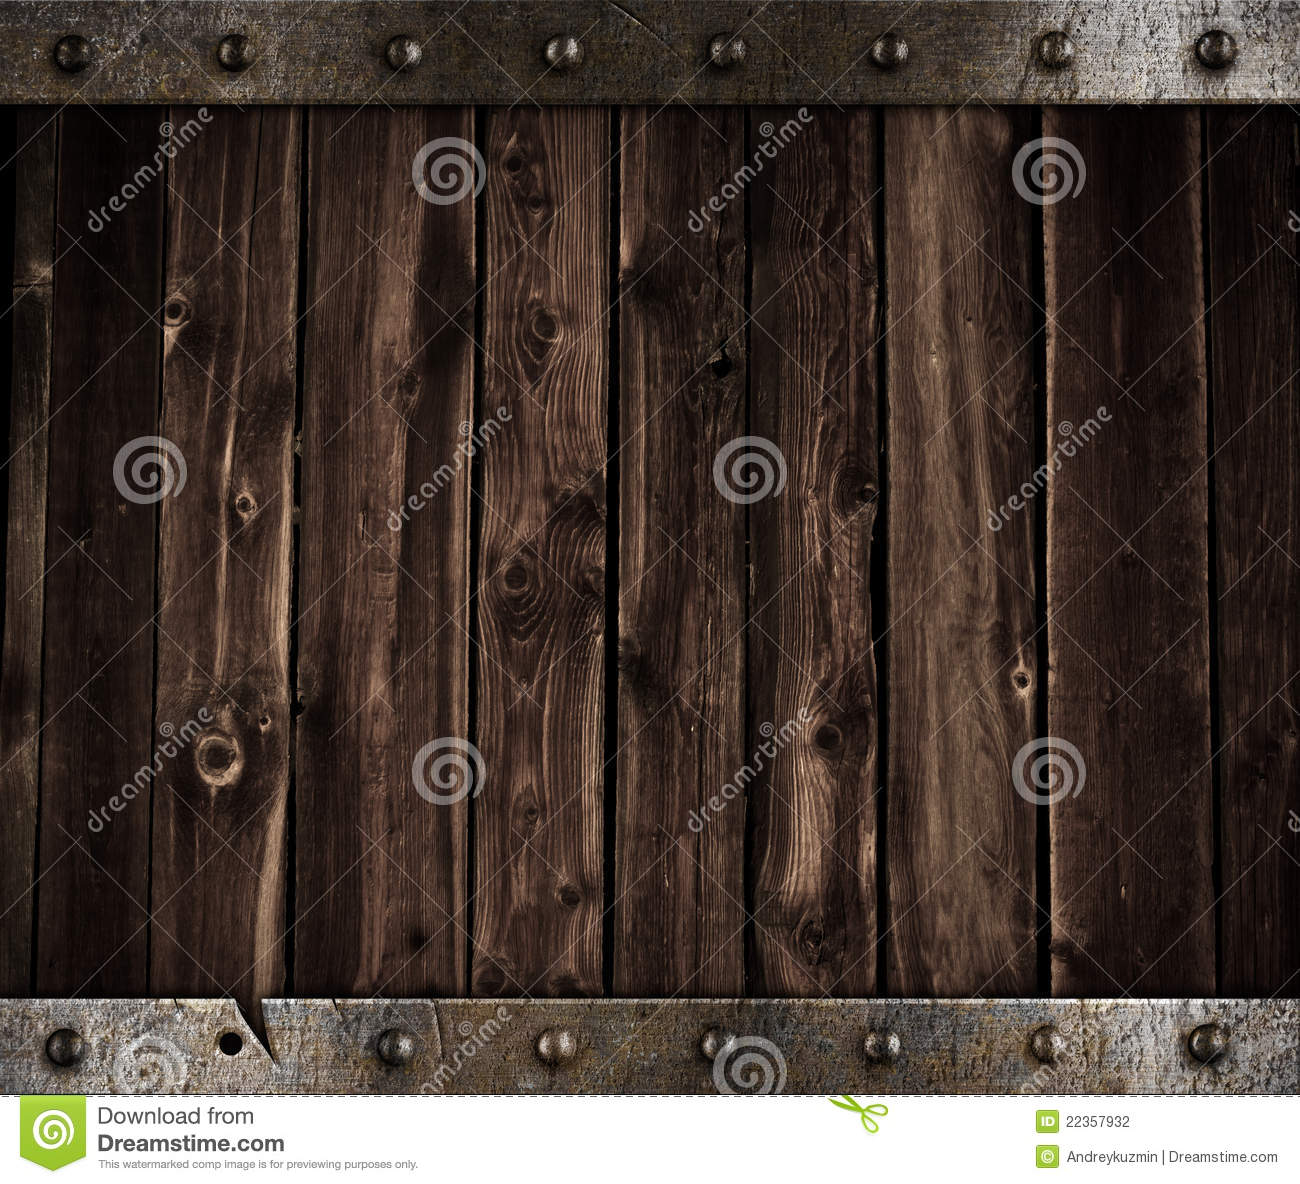 Metal and wooden medieval background